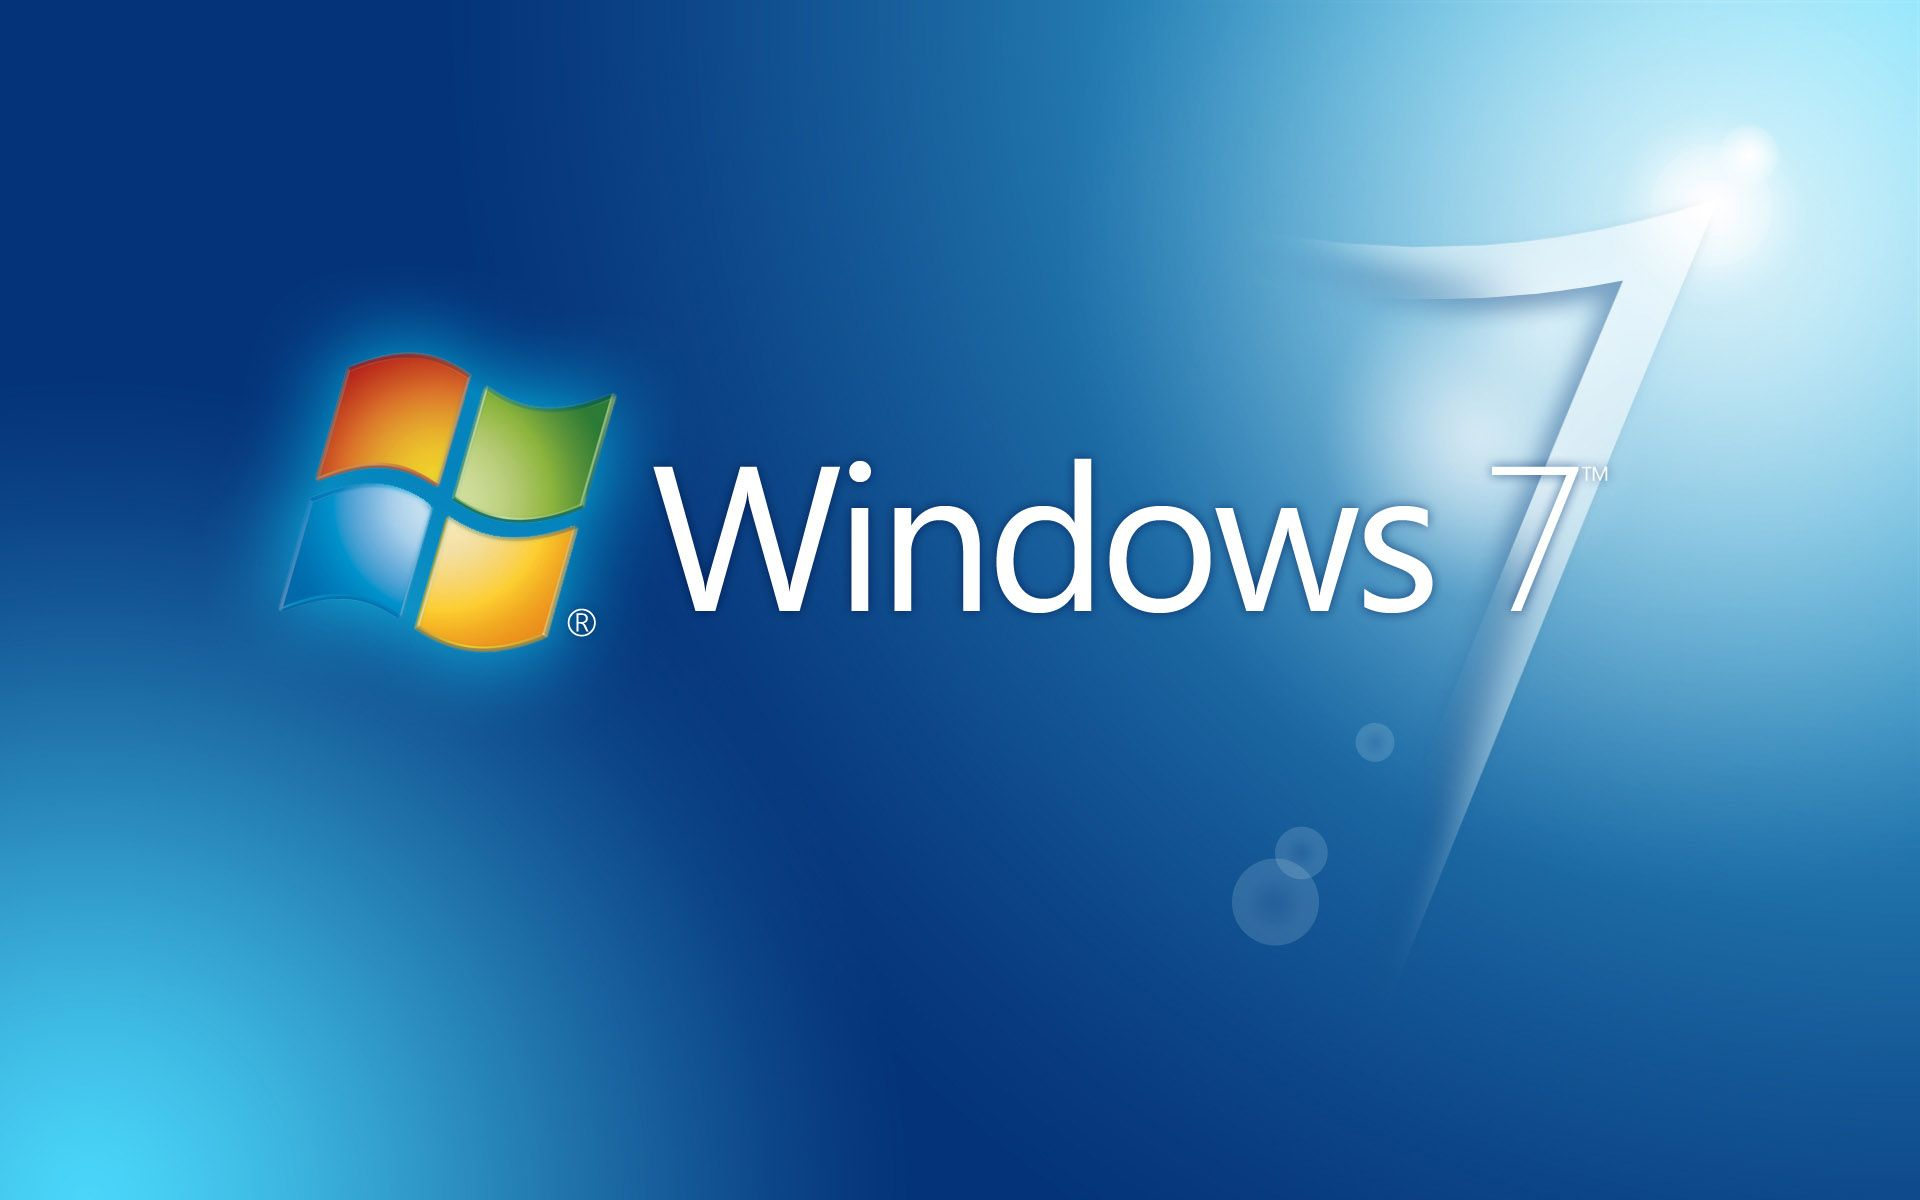 Windows 7 Recovery Disk Microsoft Windows Windows 7 Themes Windows Wallpaper